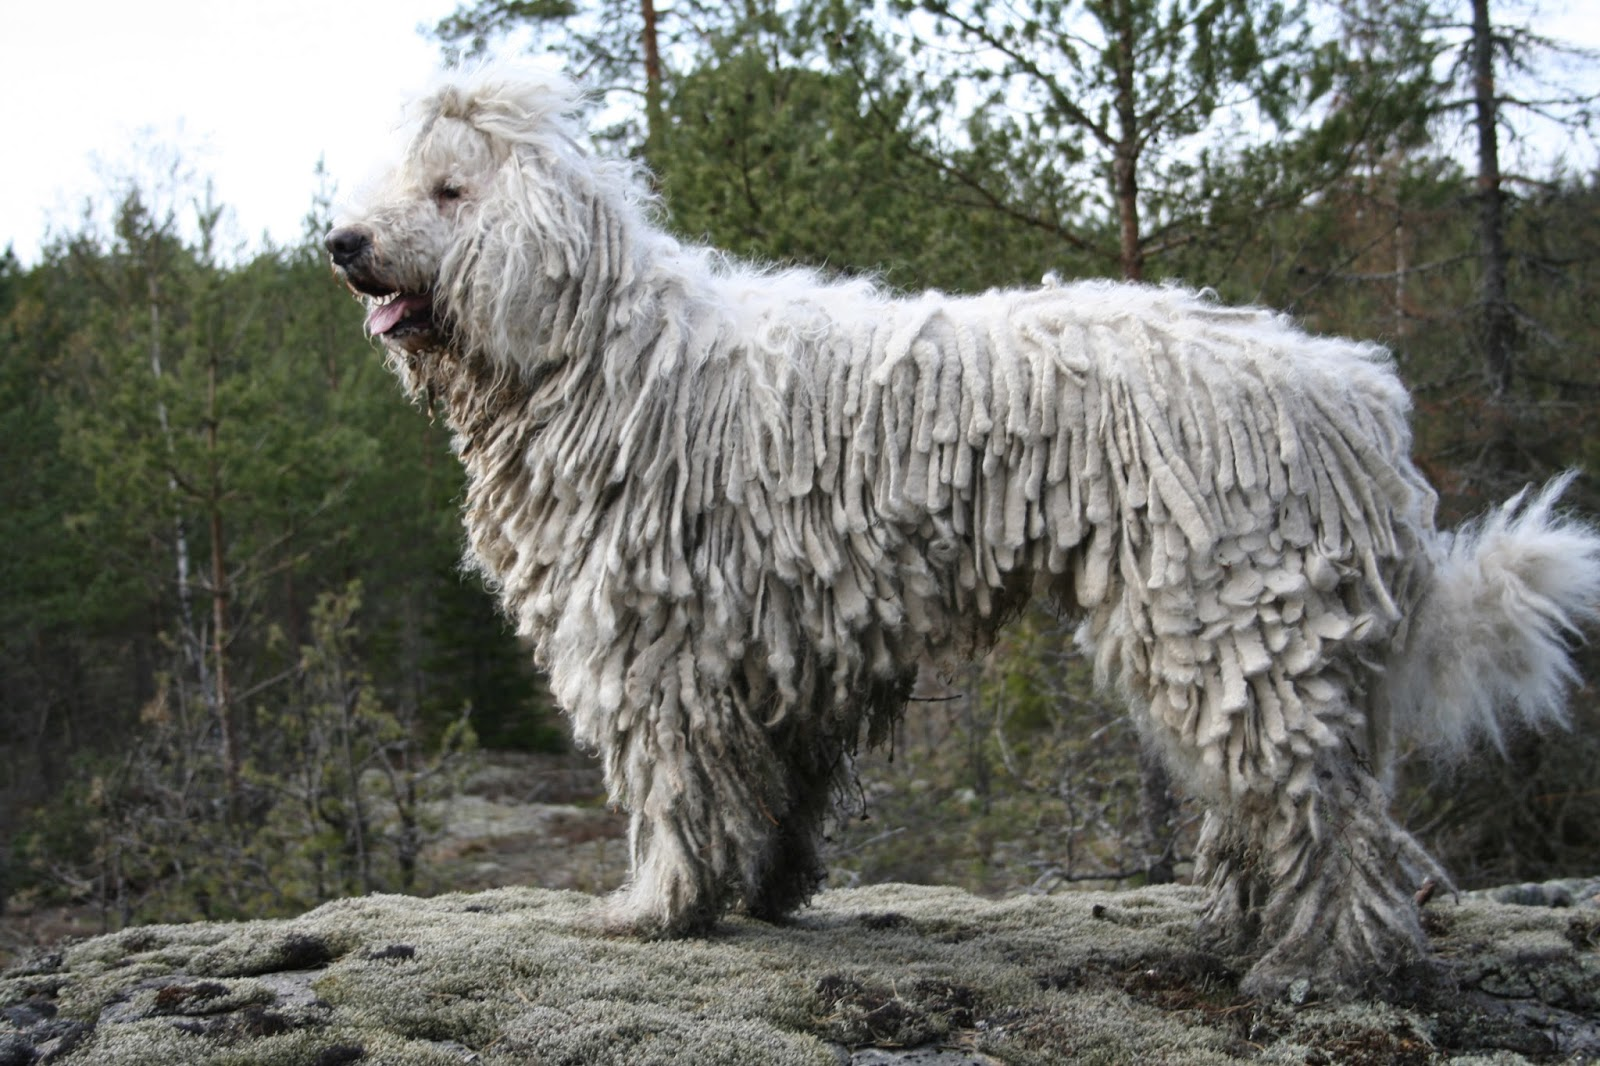 Dog Komondor is a large white dog with long fur likea ... Komondor Dog Pictures